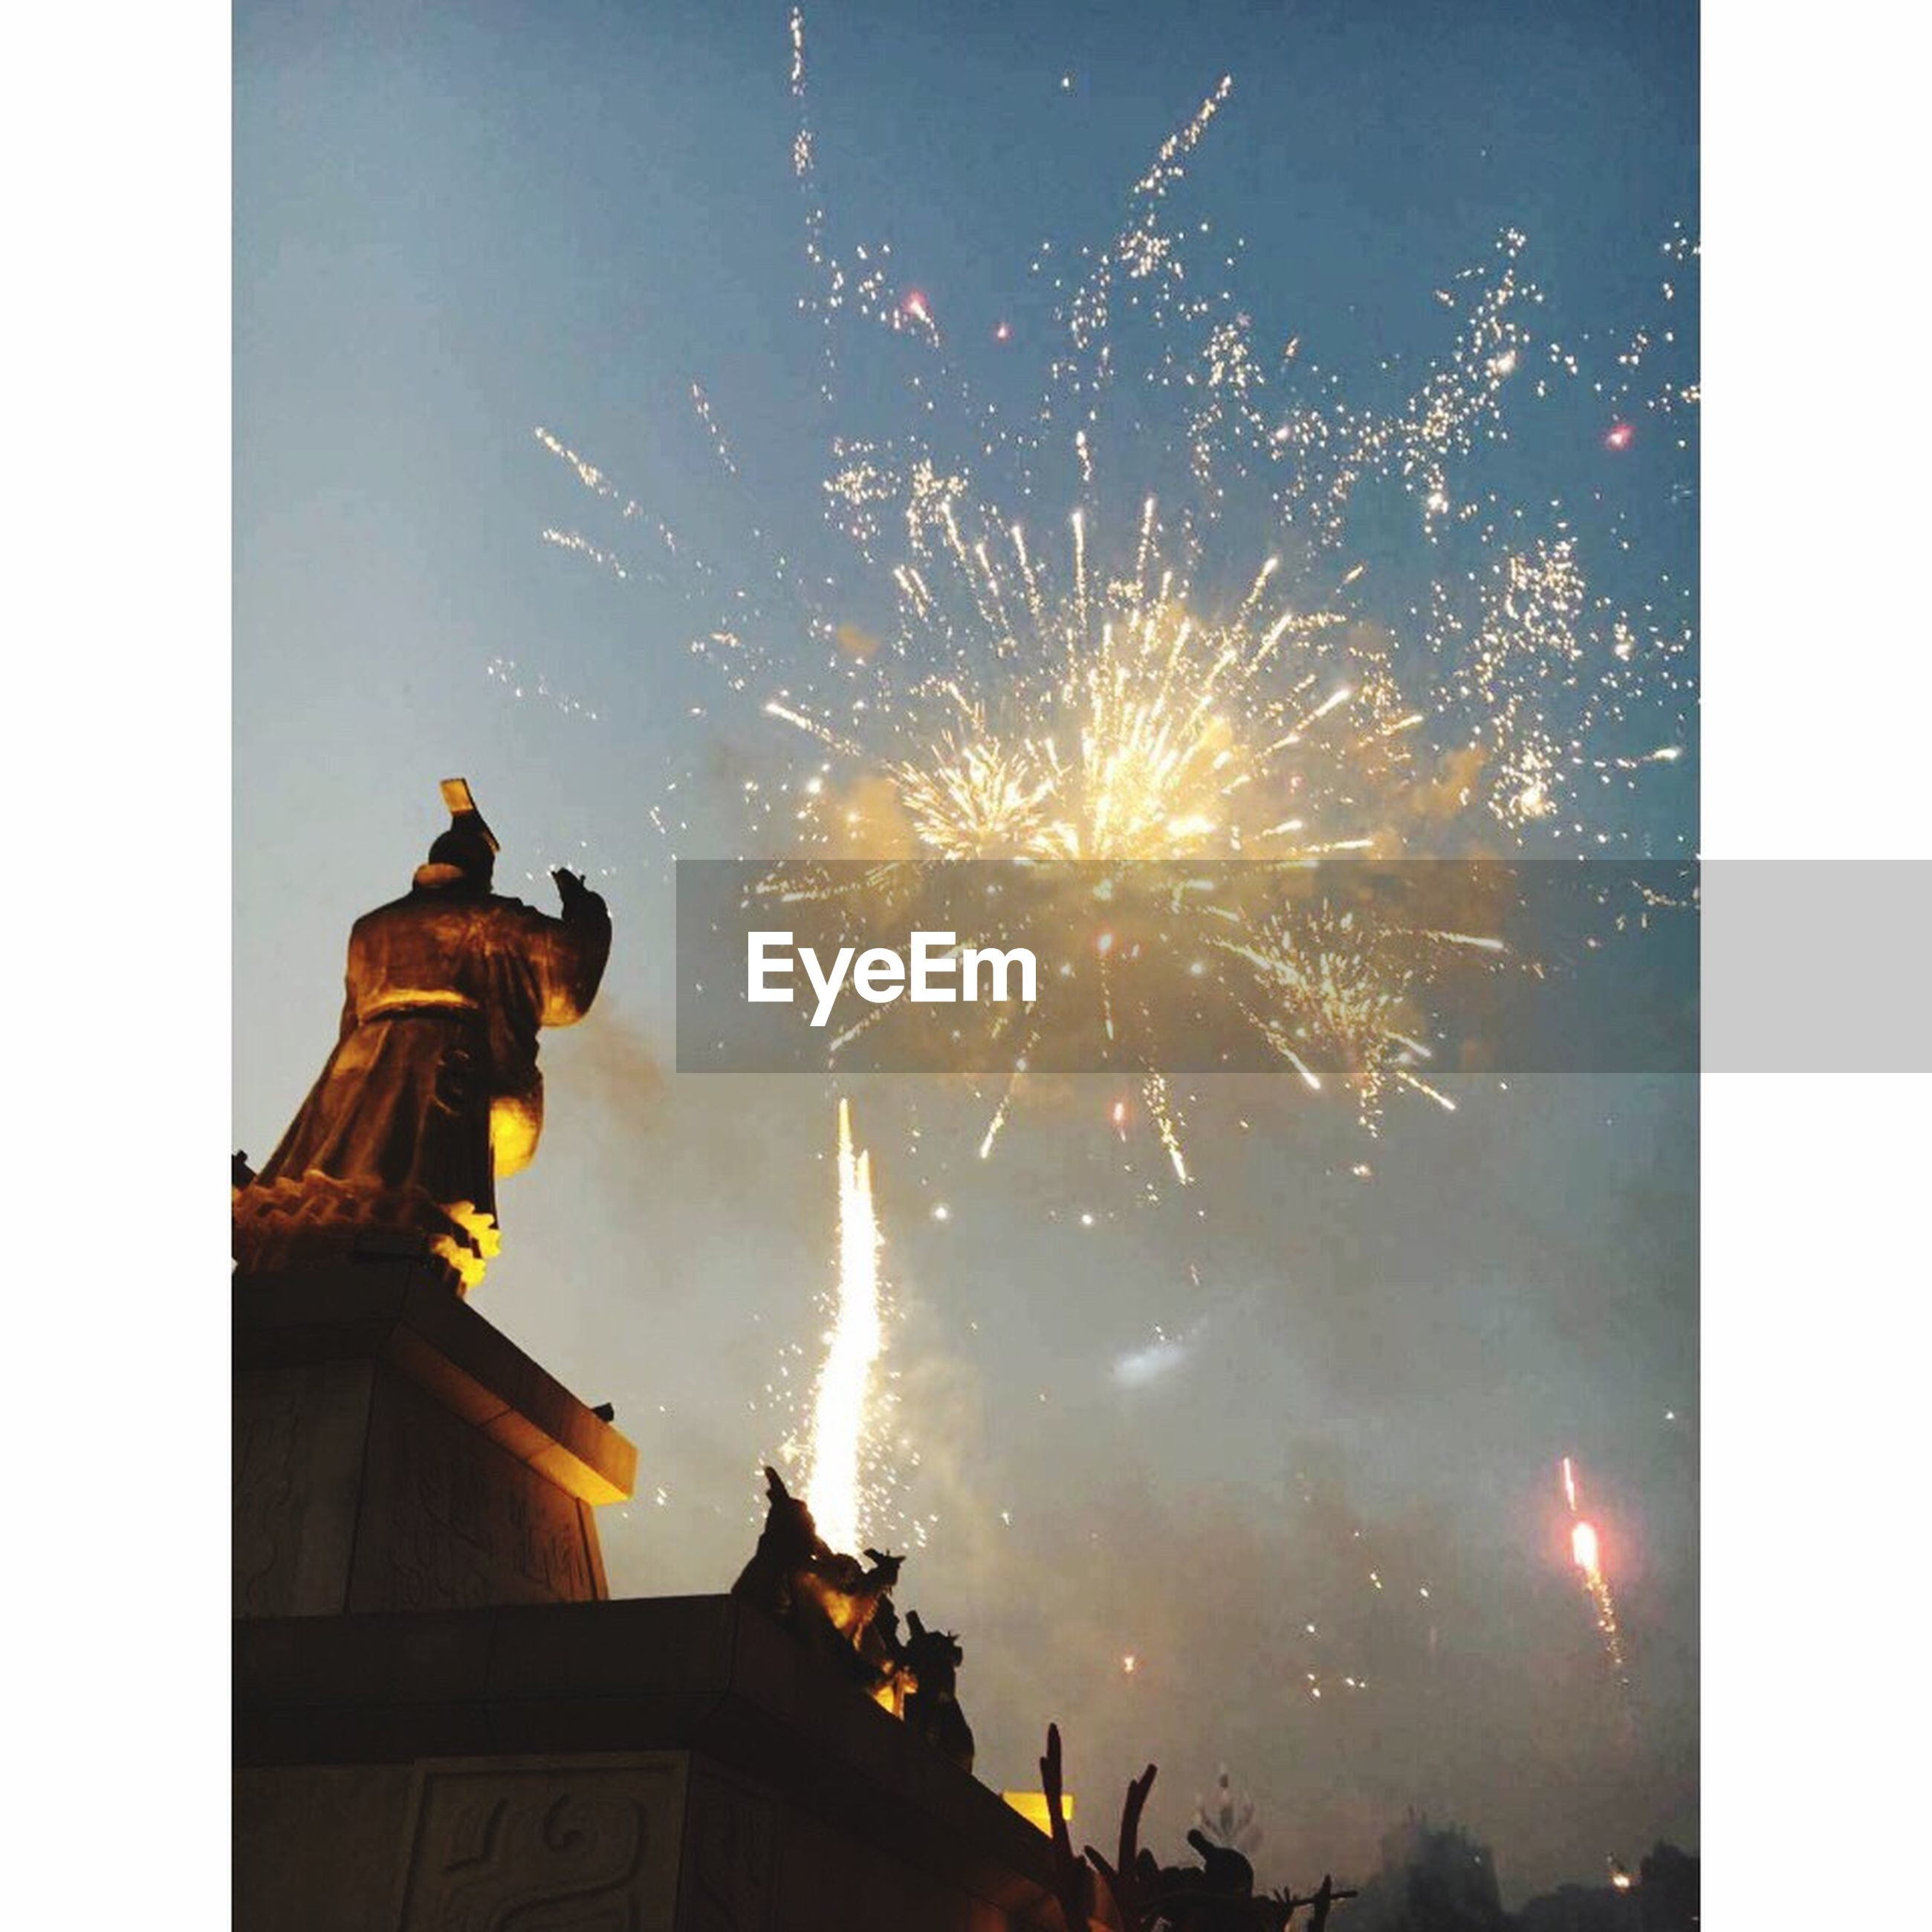 religion, architecture, spirituality, built structure, building exterior, low angle view, motion, place of worship, celebration, firework display, long exposure, church, glowing, exploding, firework - man made object, sky, sparks, outdoors, high section, steeple, outside, no people